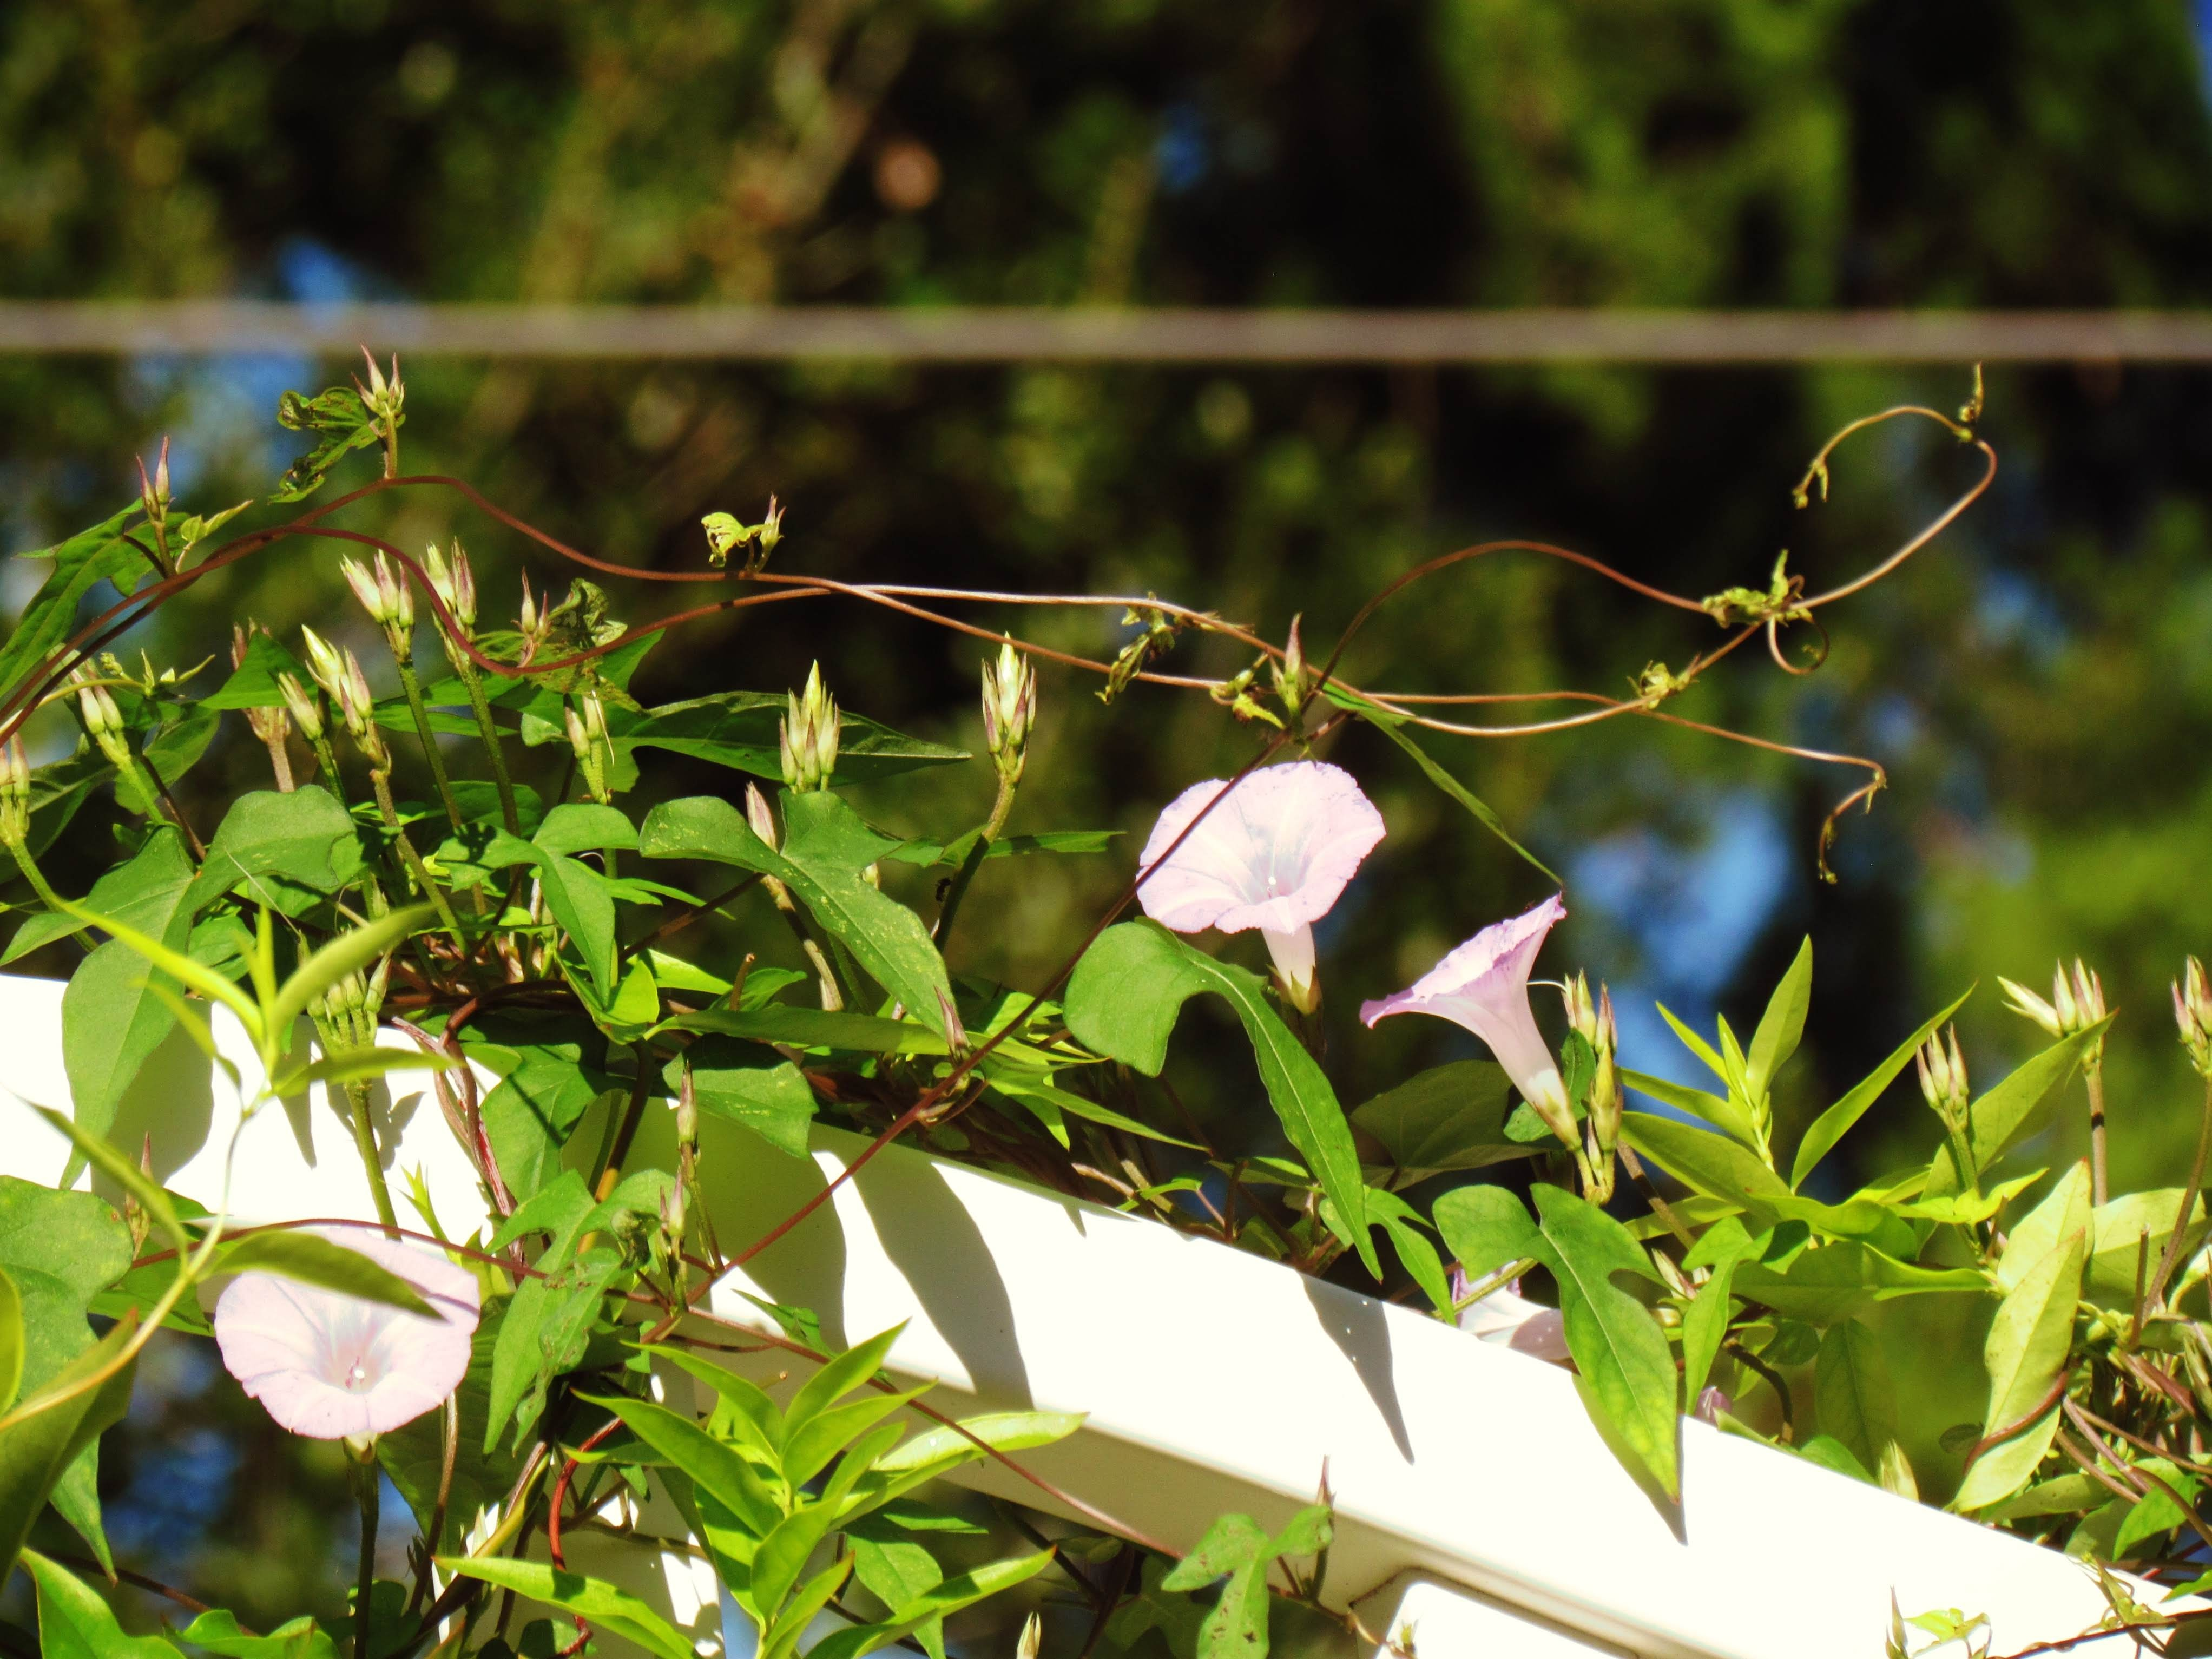 A white trellis in the butterfly garden of Hammock Park in Dunedin, Florida with purple trumpet flowers that speak of love, romance, and deep spiritual relationships